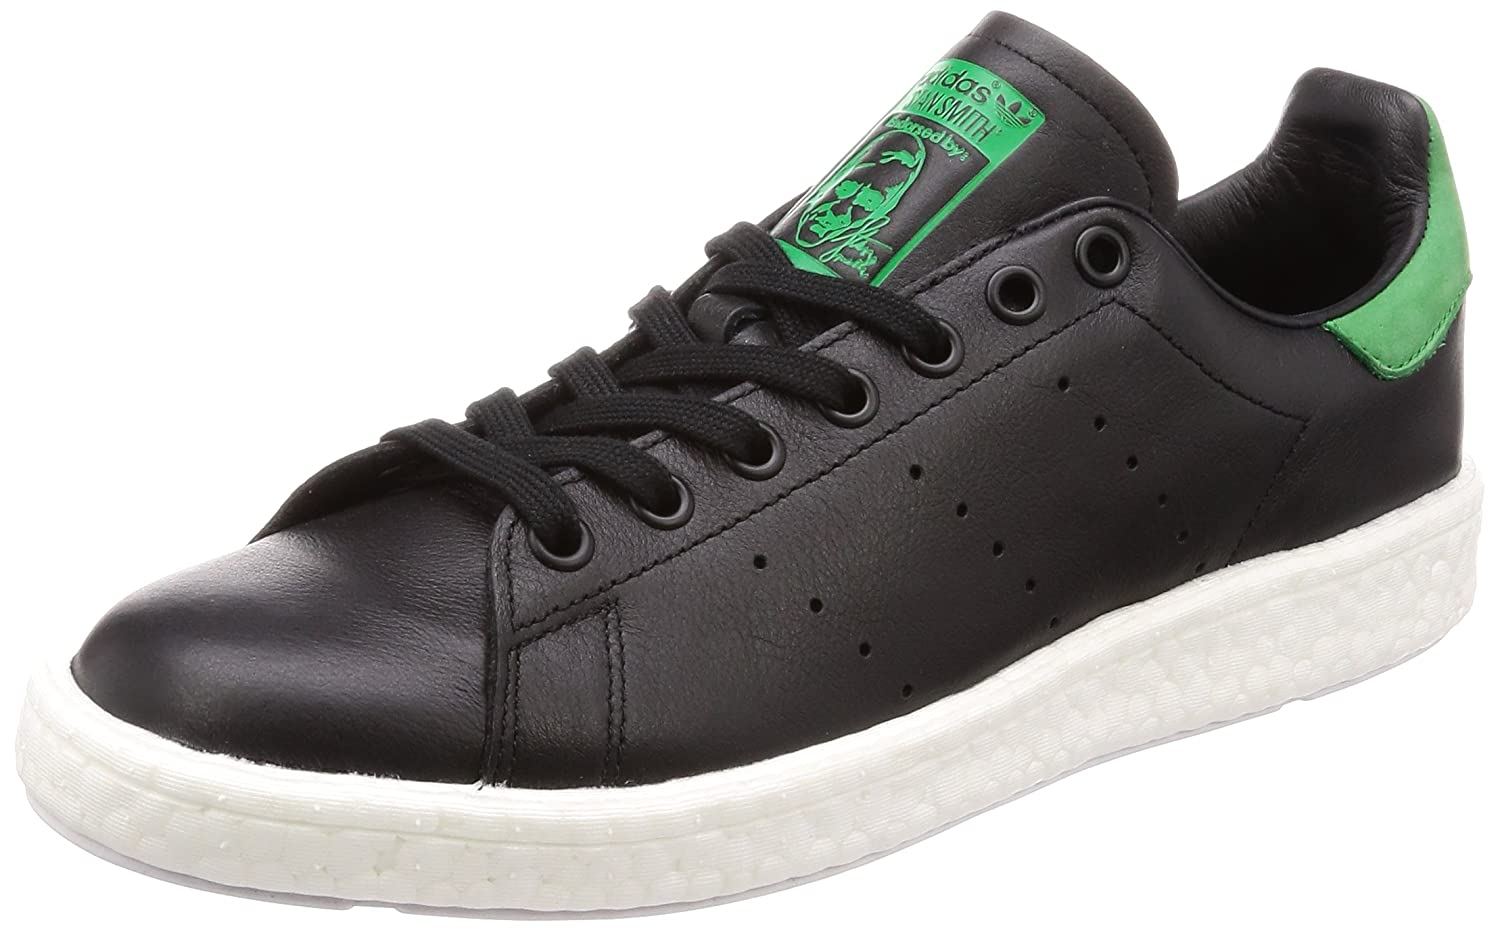 outlet store 8e07f f4713 Amazon.com | adidas Originals Men's Sneaker Stan Smith Boost ...